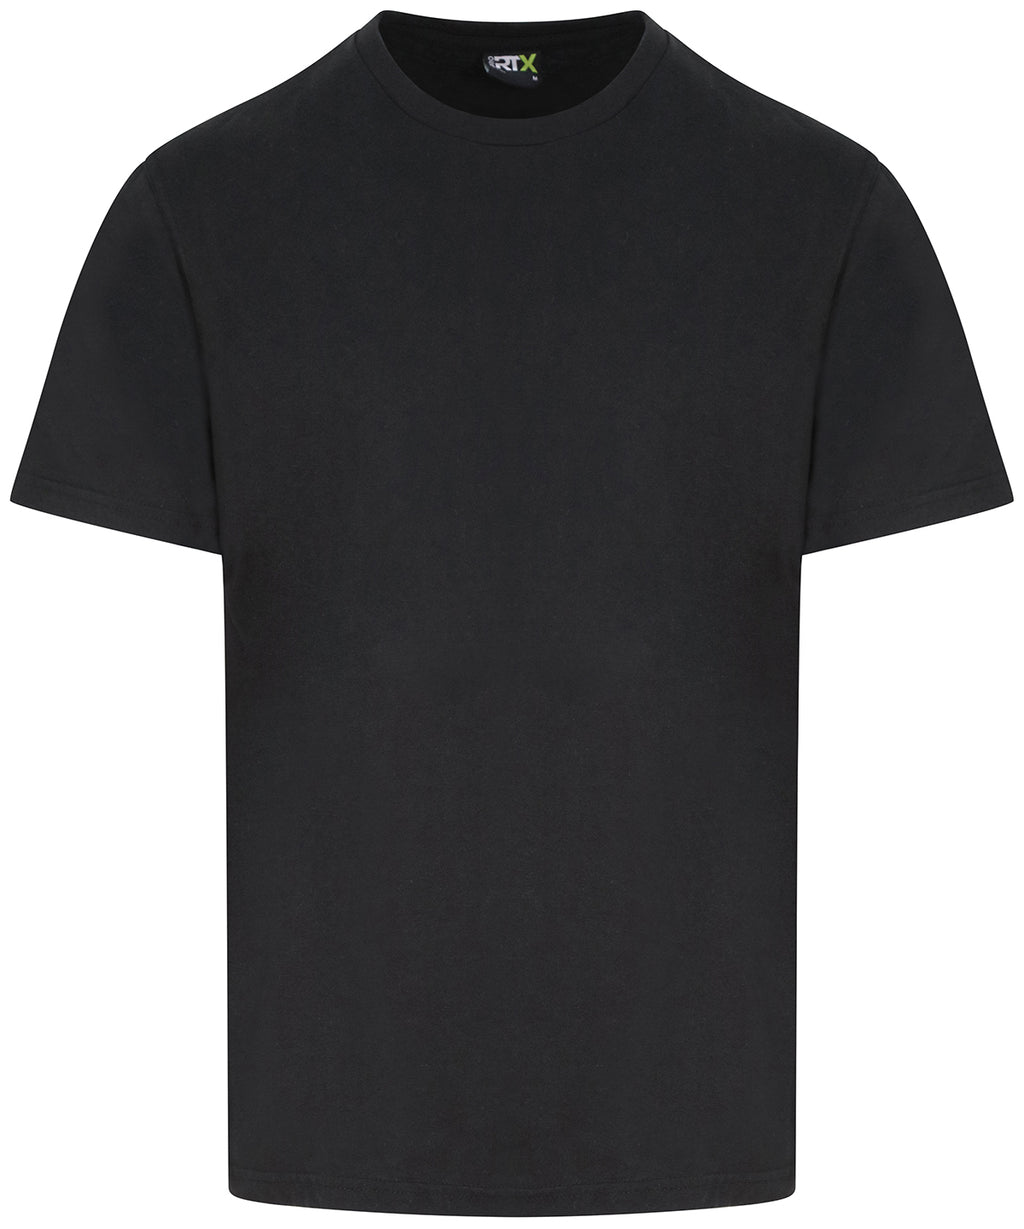 Mens Plain T-Shirt - Black